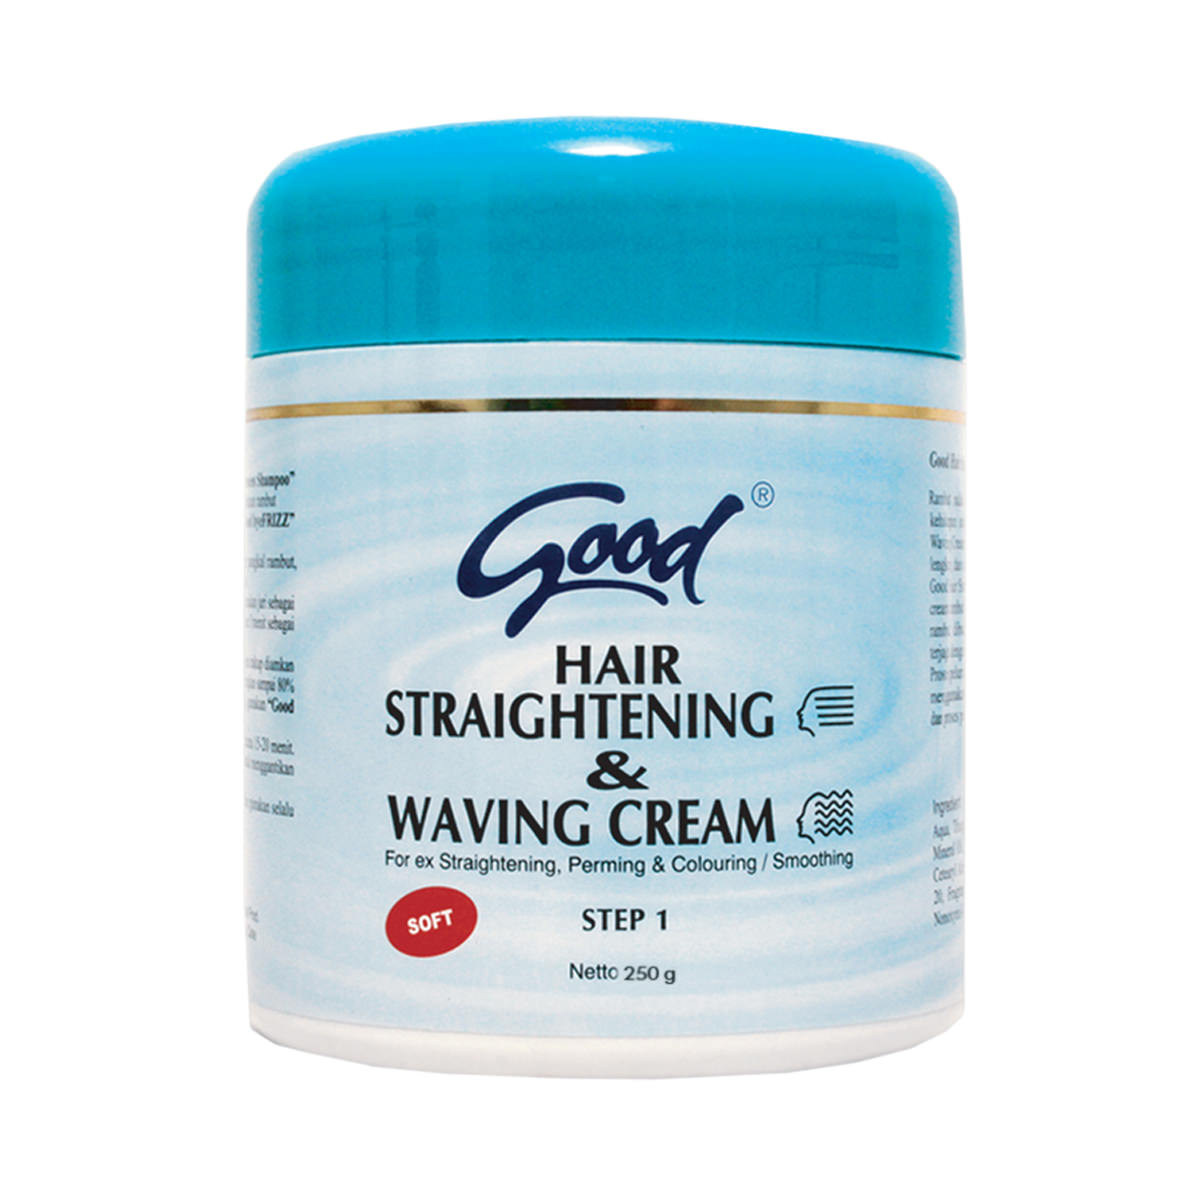 Good-Hair-Straightening-Waving-Cream-Soft-sfw(1)